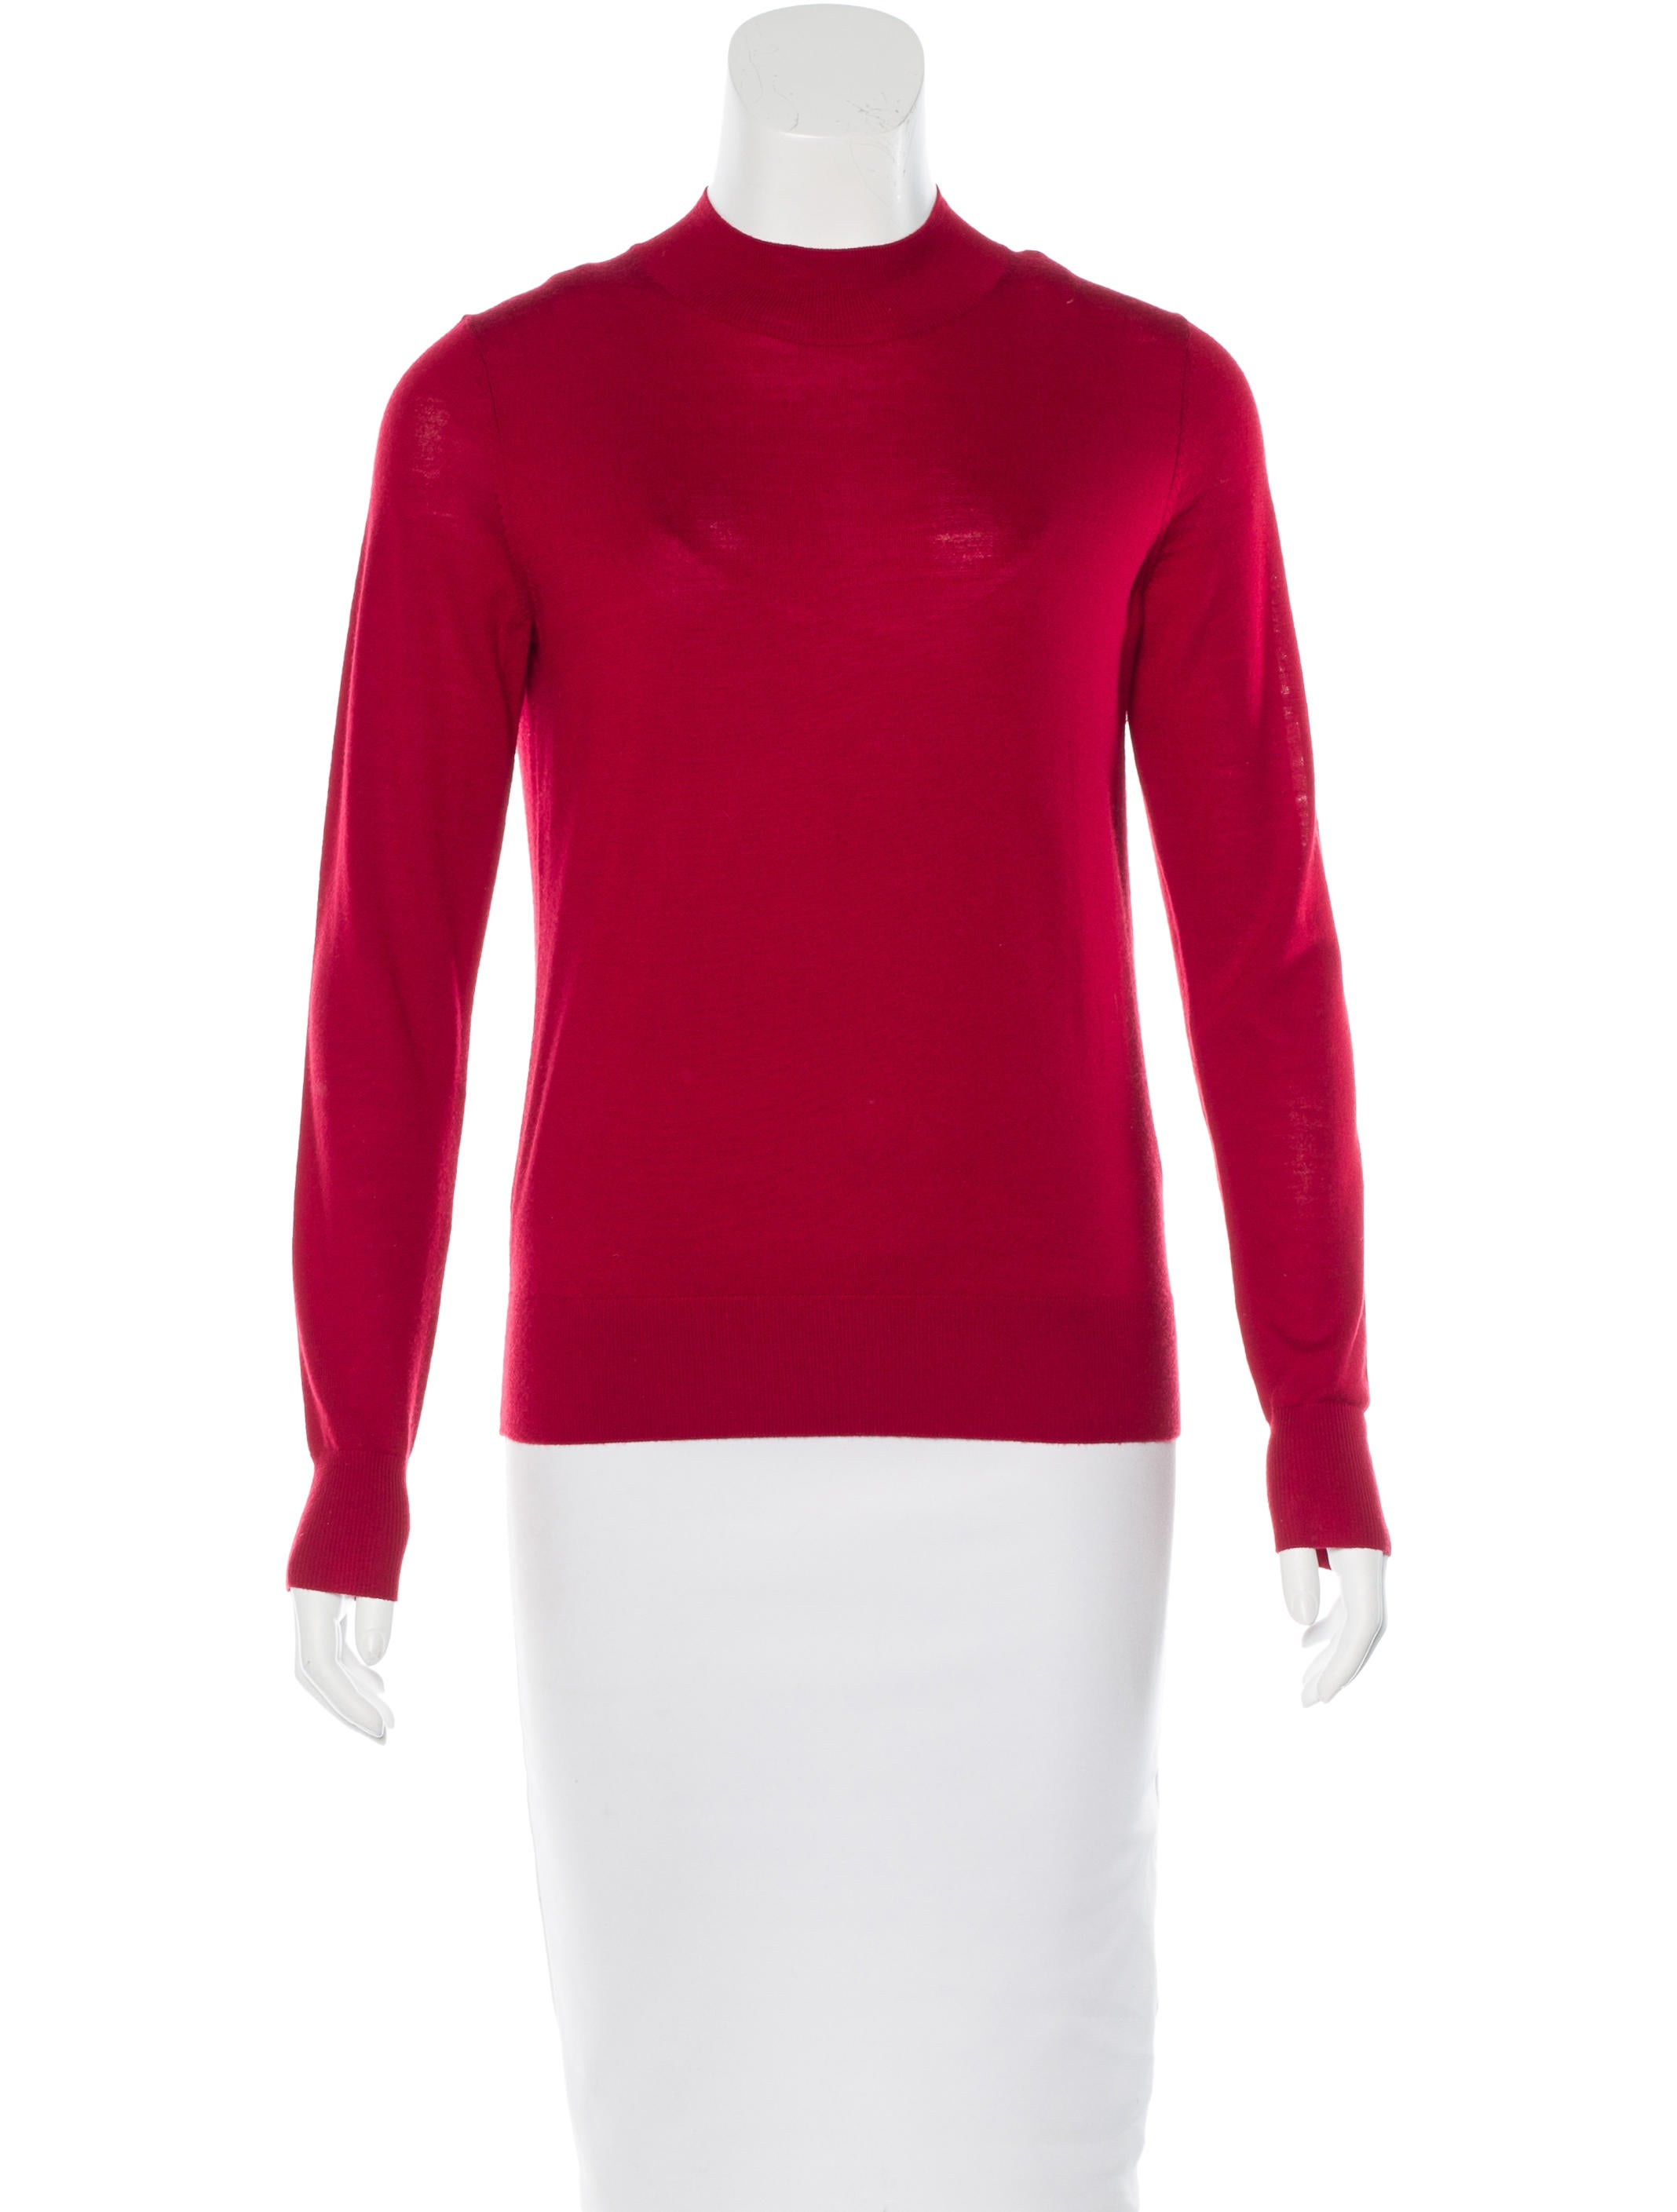 Theory merino wool mock neck sweater clothing wte22582 for Merino wool shirt womens